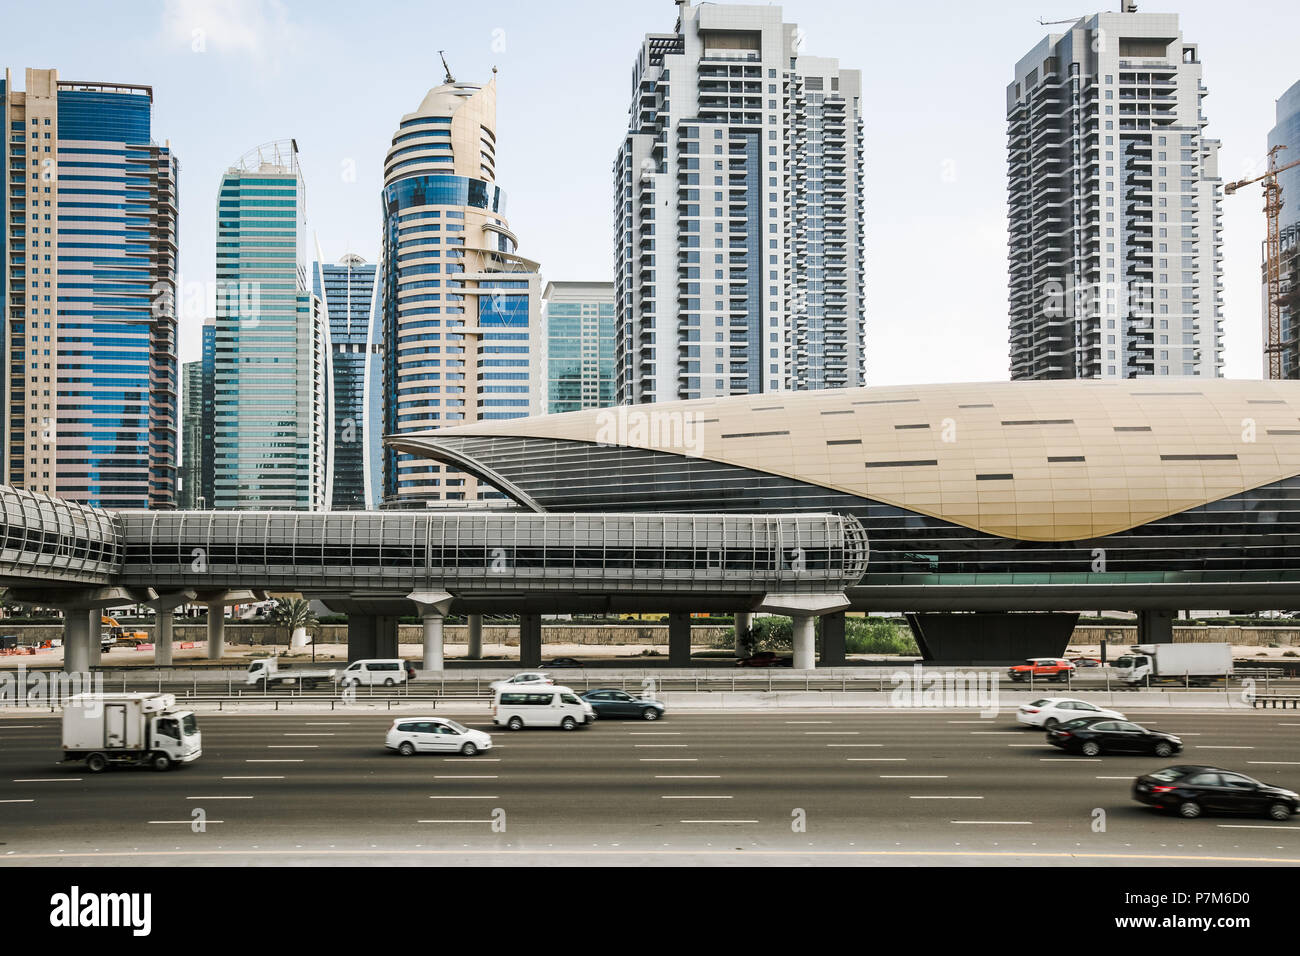 Futuristic building of Dubai metro station and highway in Dubai, United Arab Emirates - Stock Image